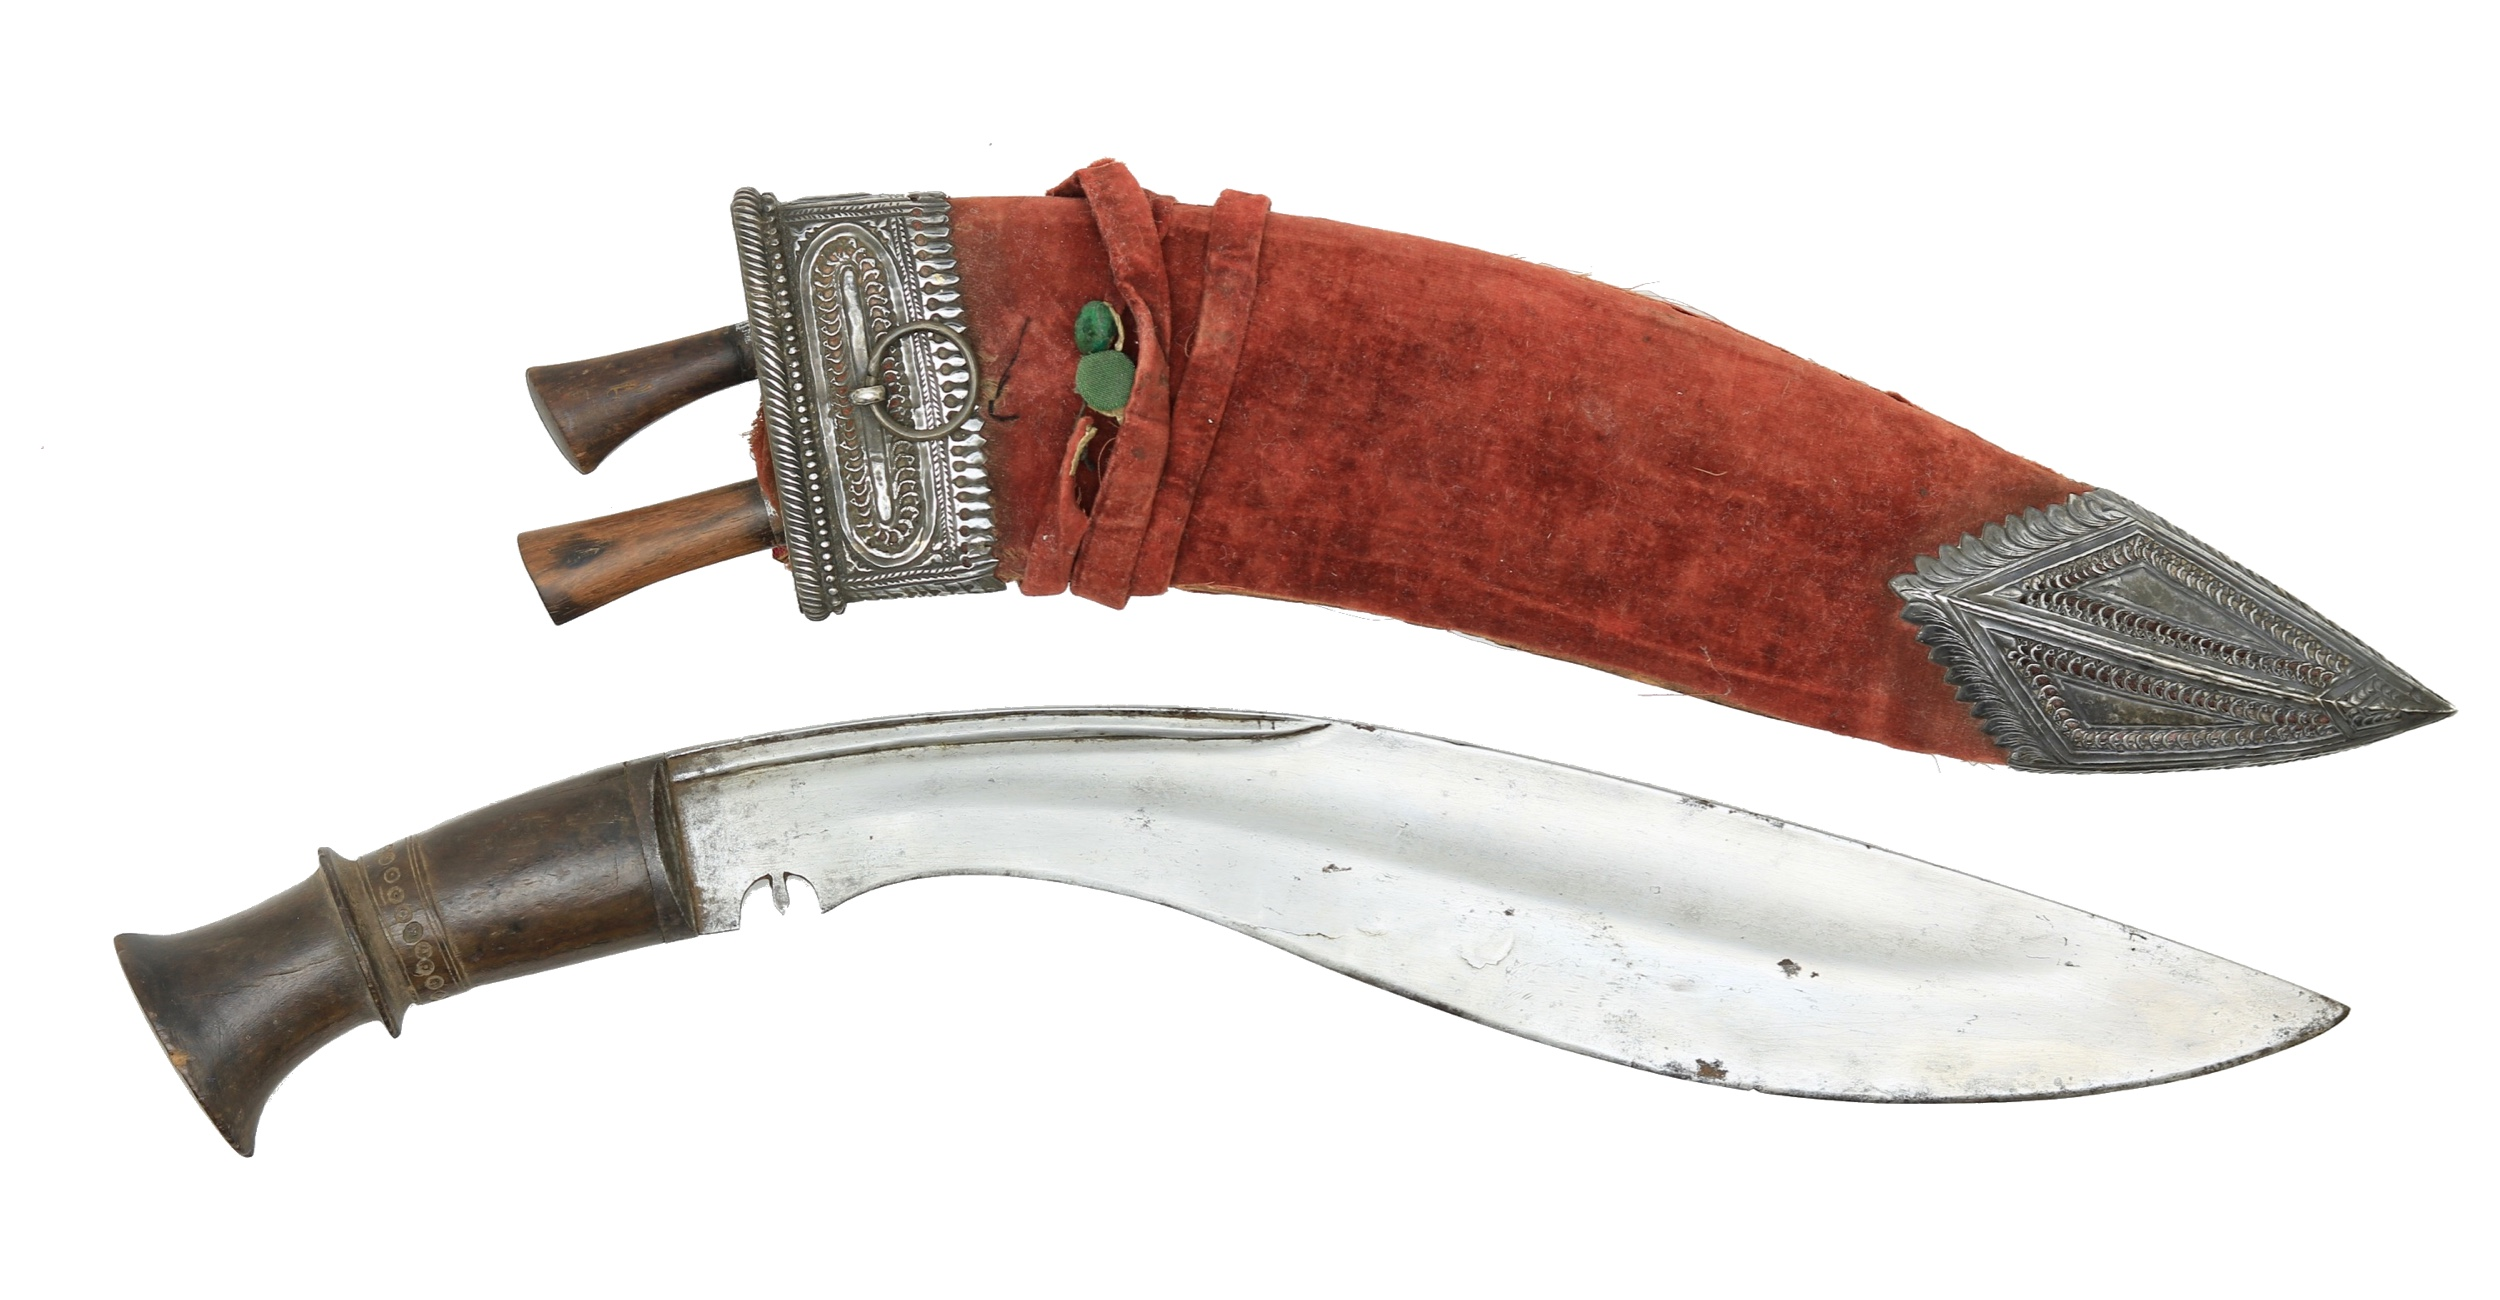 Very large khukuri